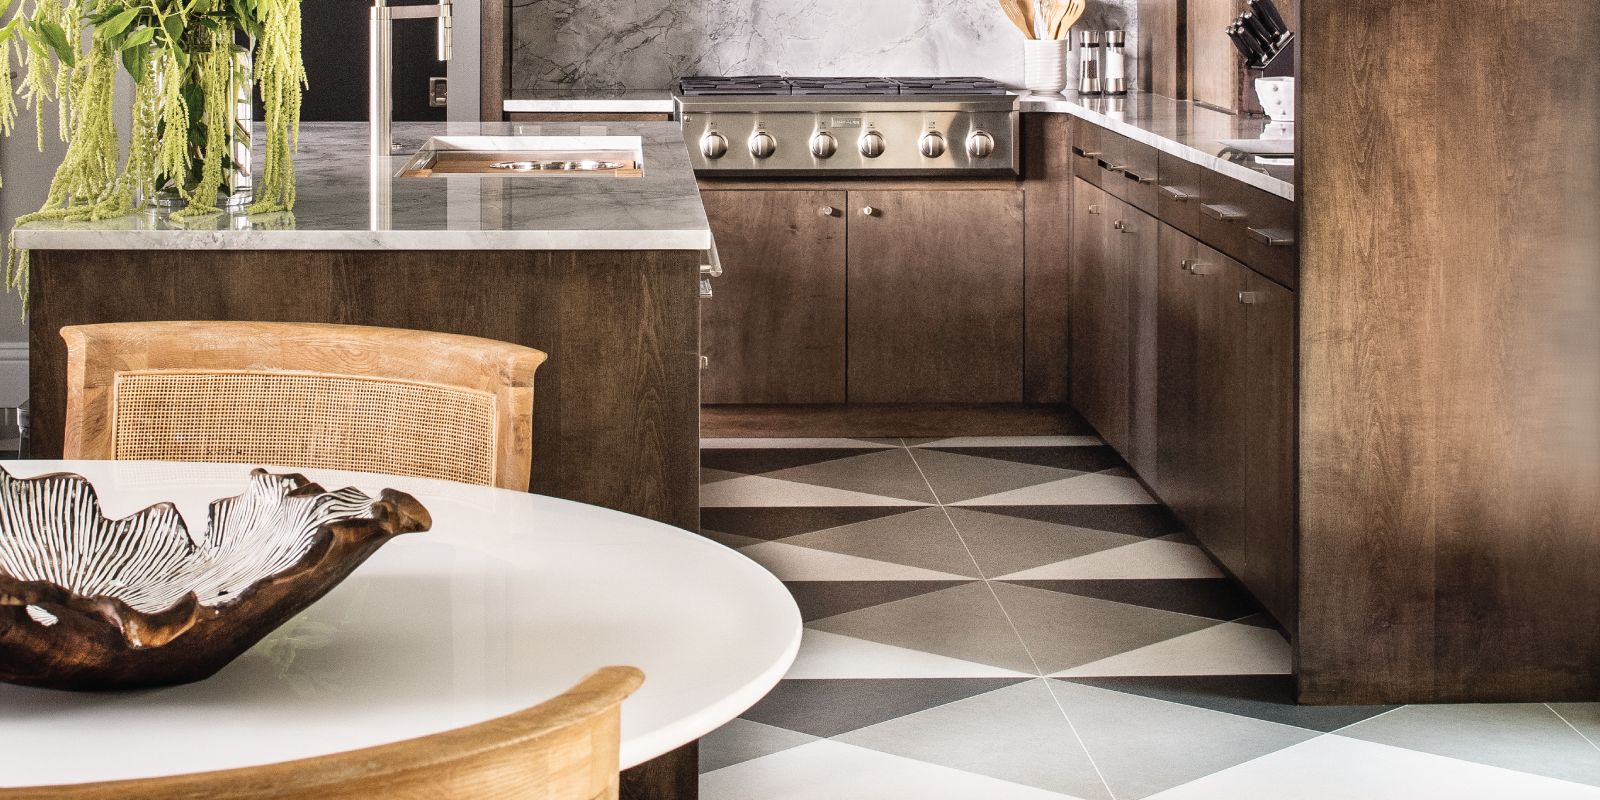 Trinity Surfaces, Audrey Lane Custom Tile Collection. Flooring products